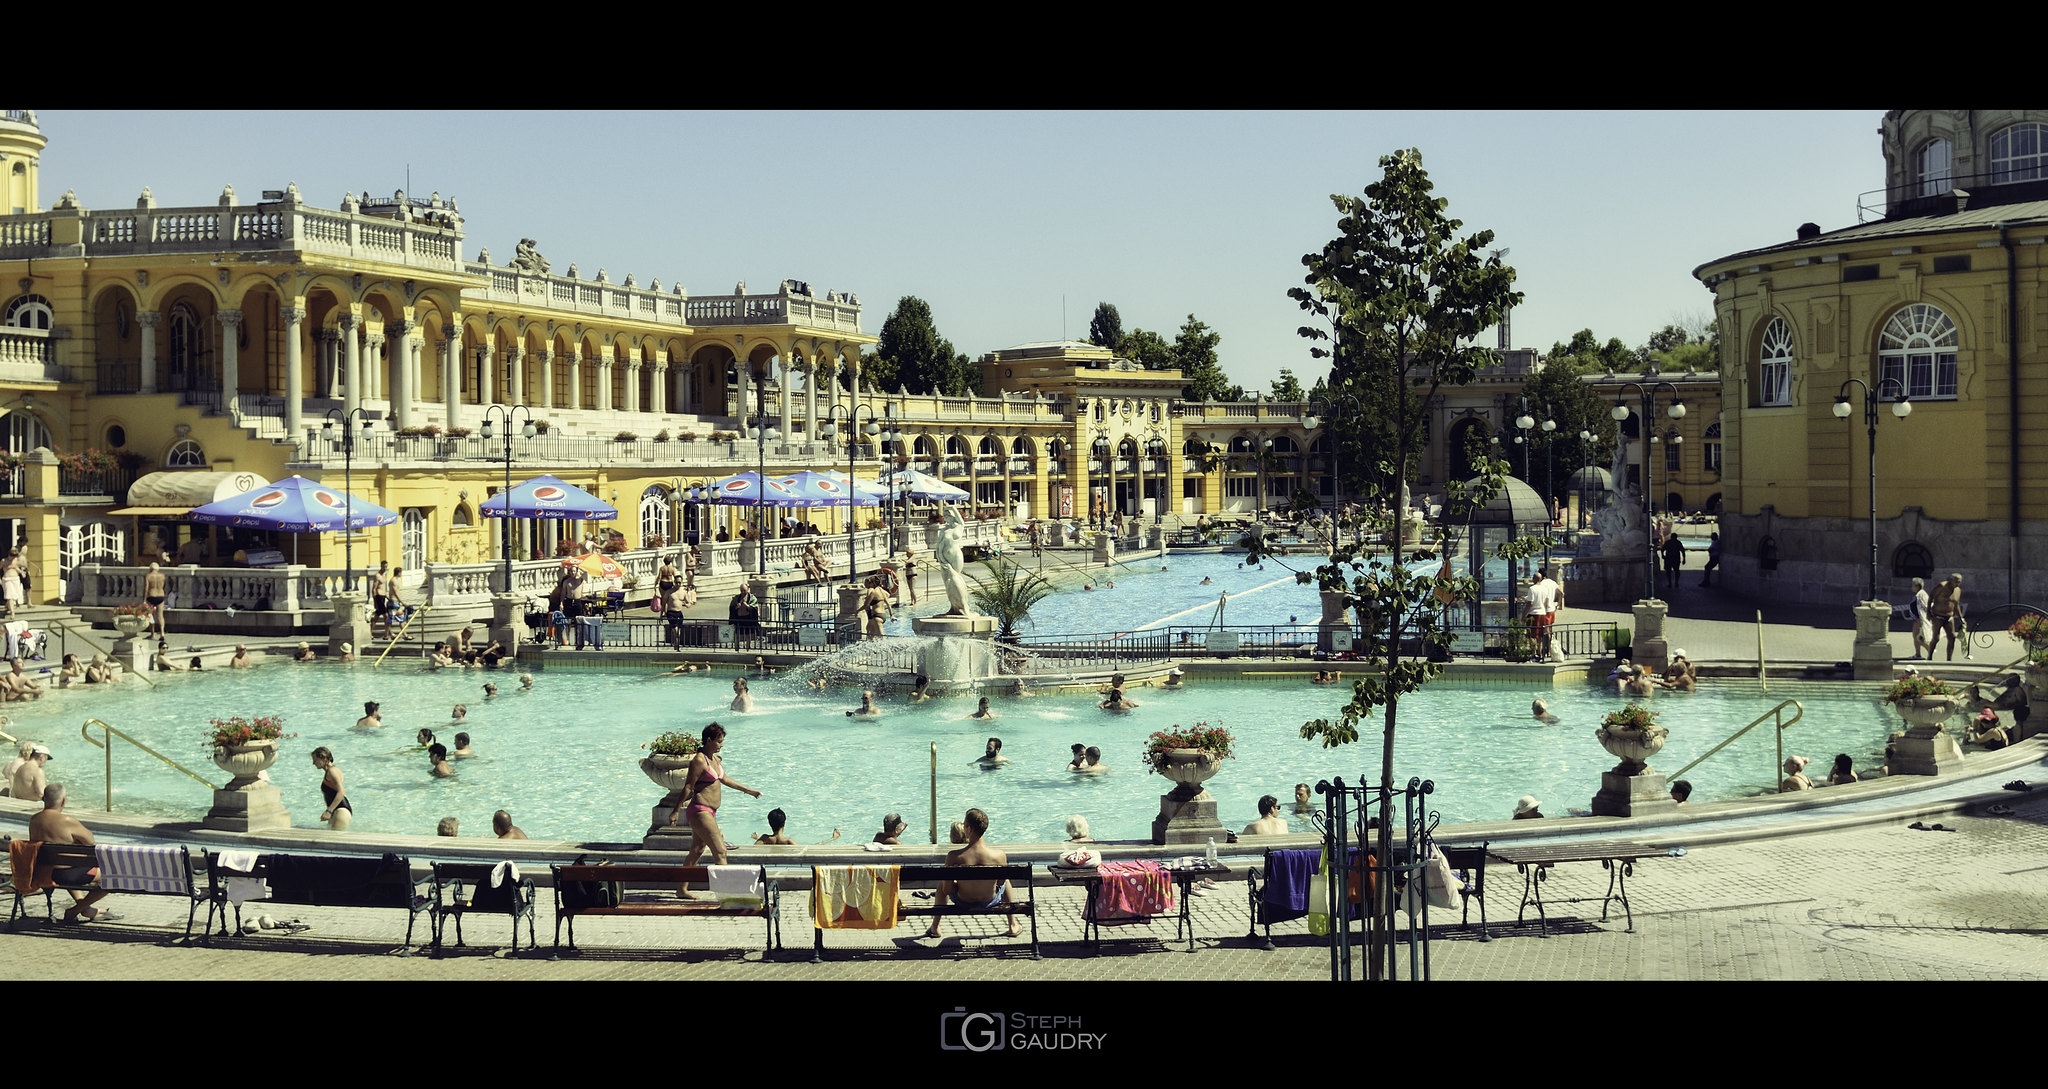 Széchenyi Thermal Bath and Swimming Pool [Cliquez pour lancer le diaporama]